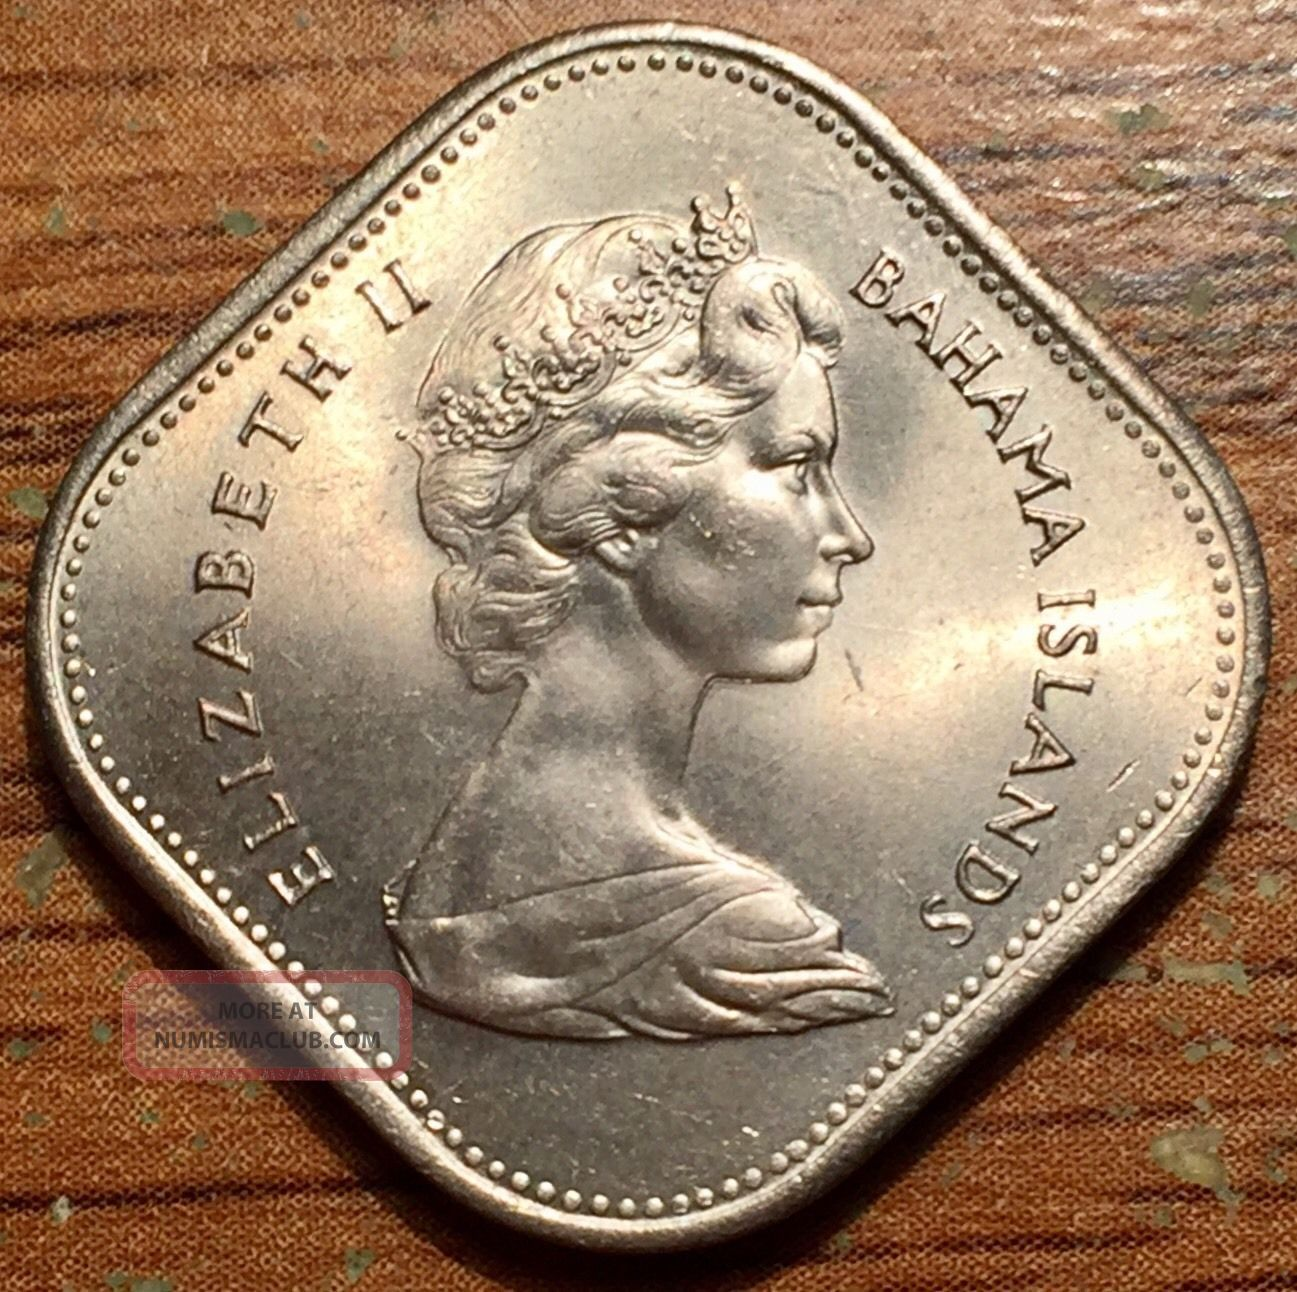 1966 Bahama Islands 15 Cents Queen Elizabeth Ii Coin